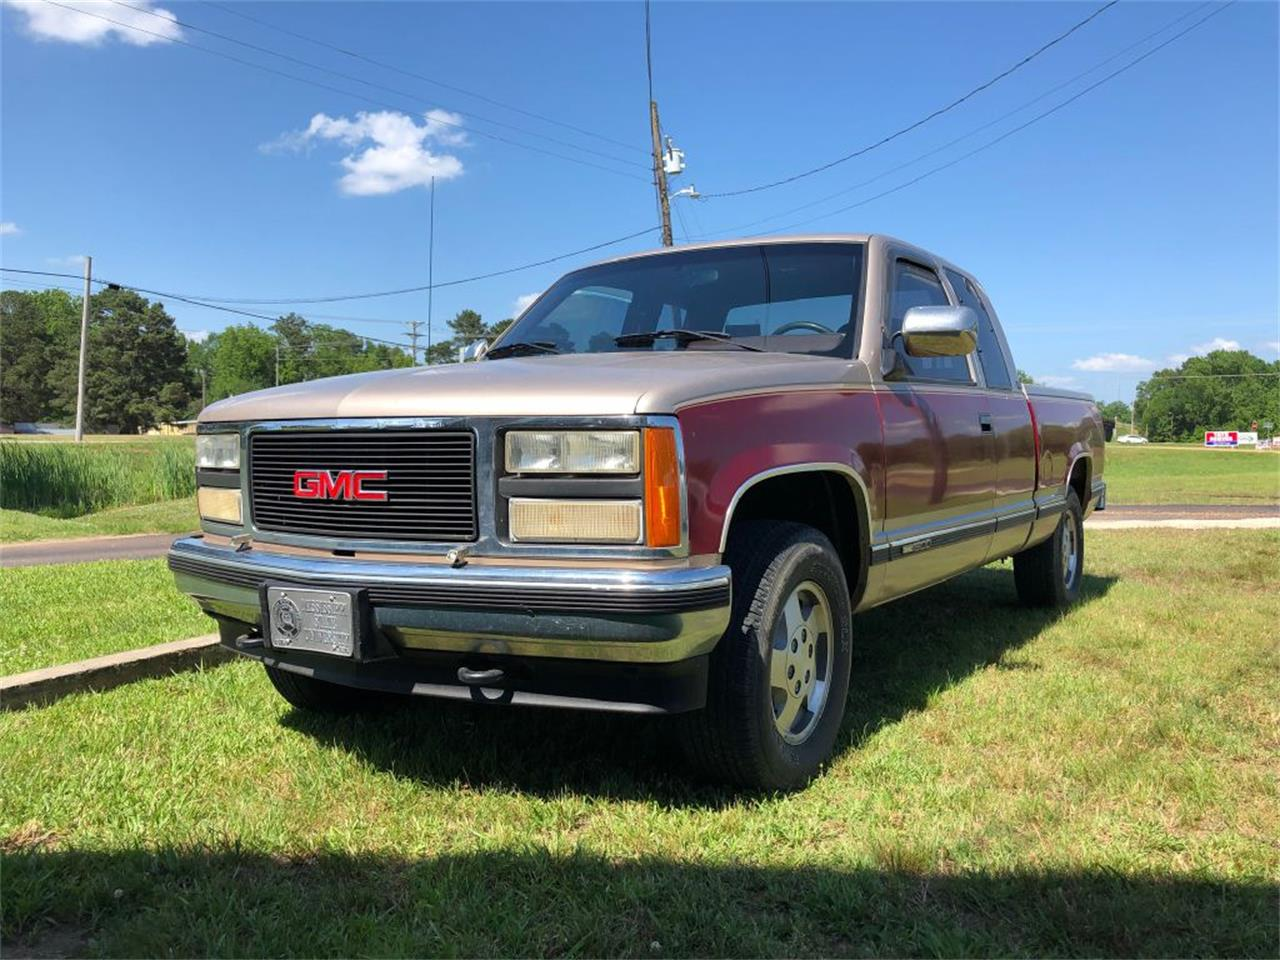 Large Picture of '92 GMC Sierra located in Batesville Mississippi - $9,250.00 Offered by Cotton Warehouse Classic Cars - Q65U